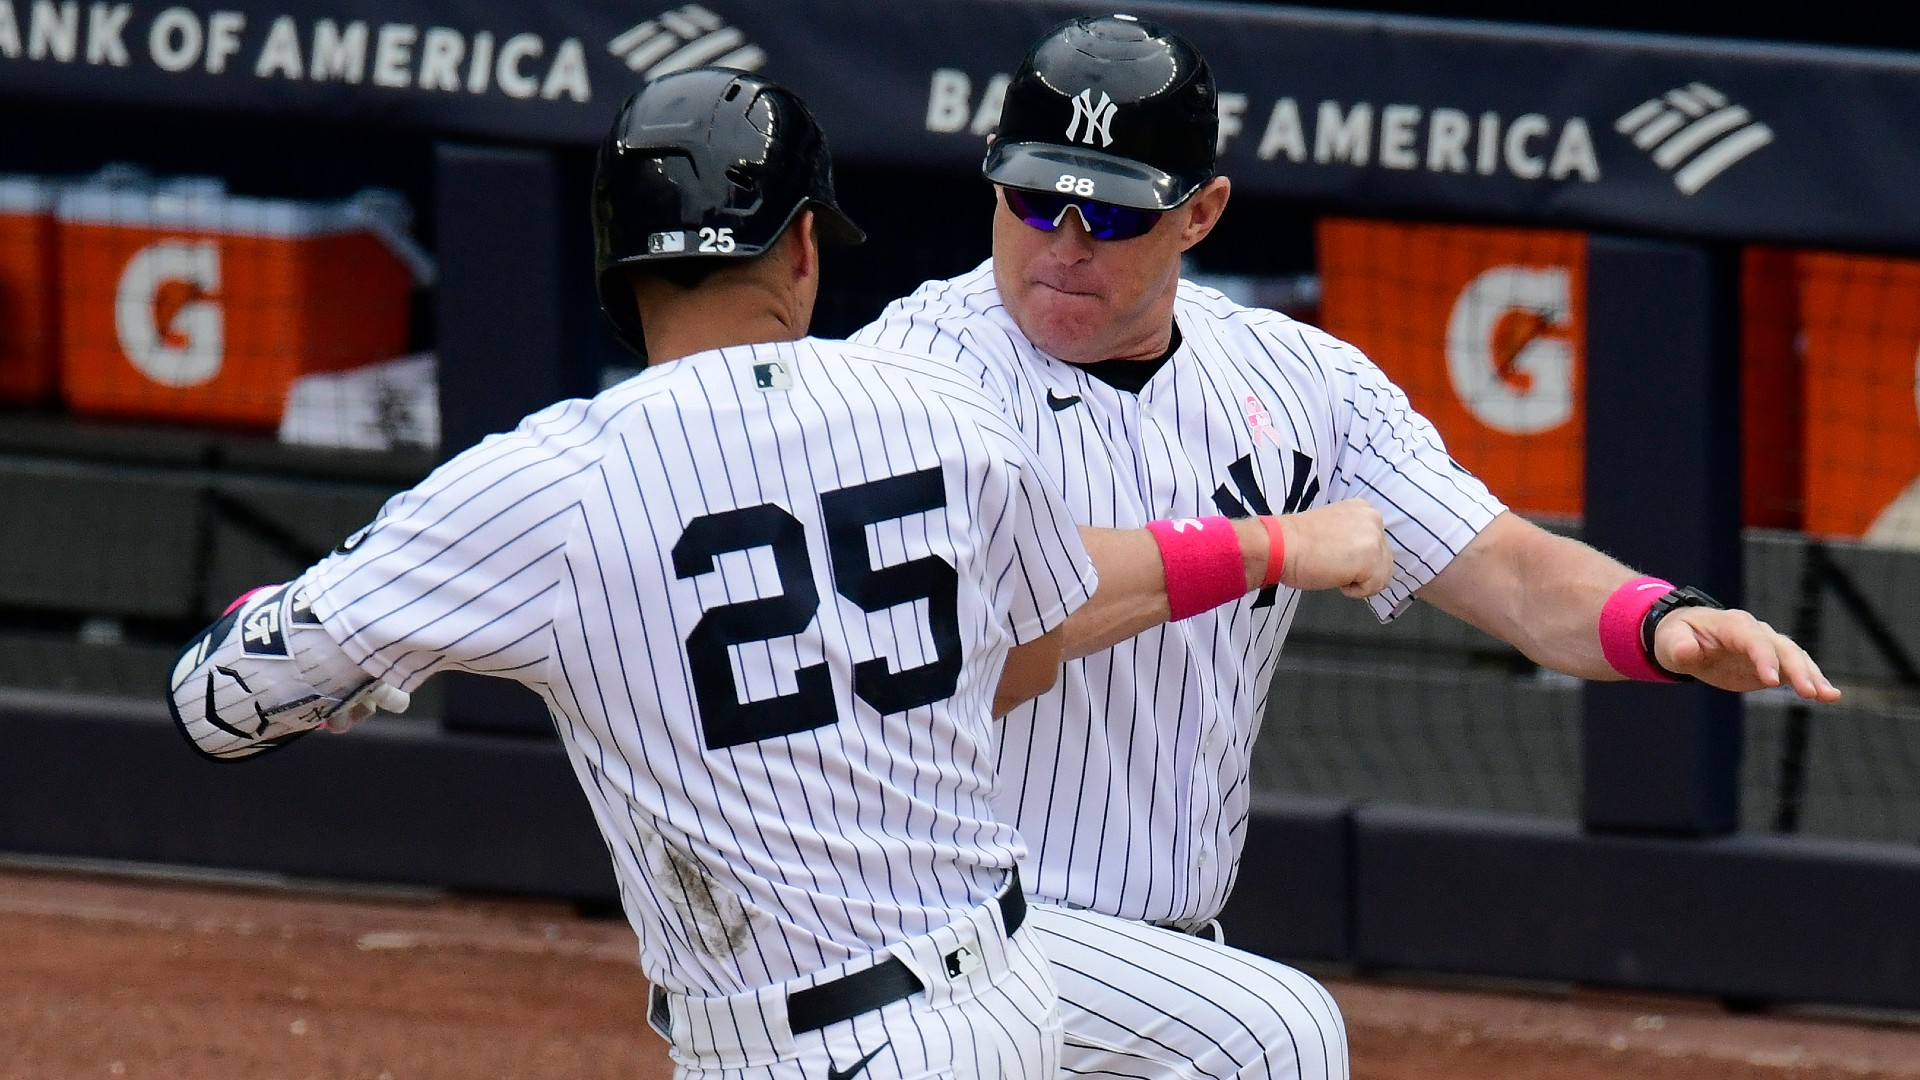 """The Yankees expected Phil Nevin to play with Ray despite COVID's """"positive progress"""""""